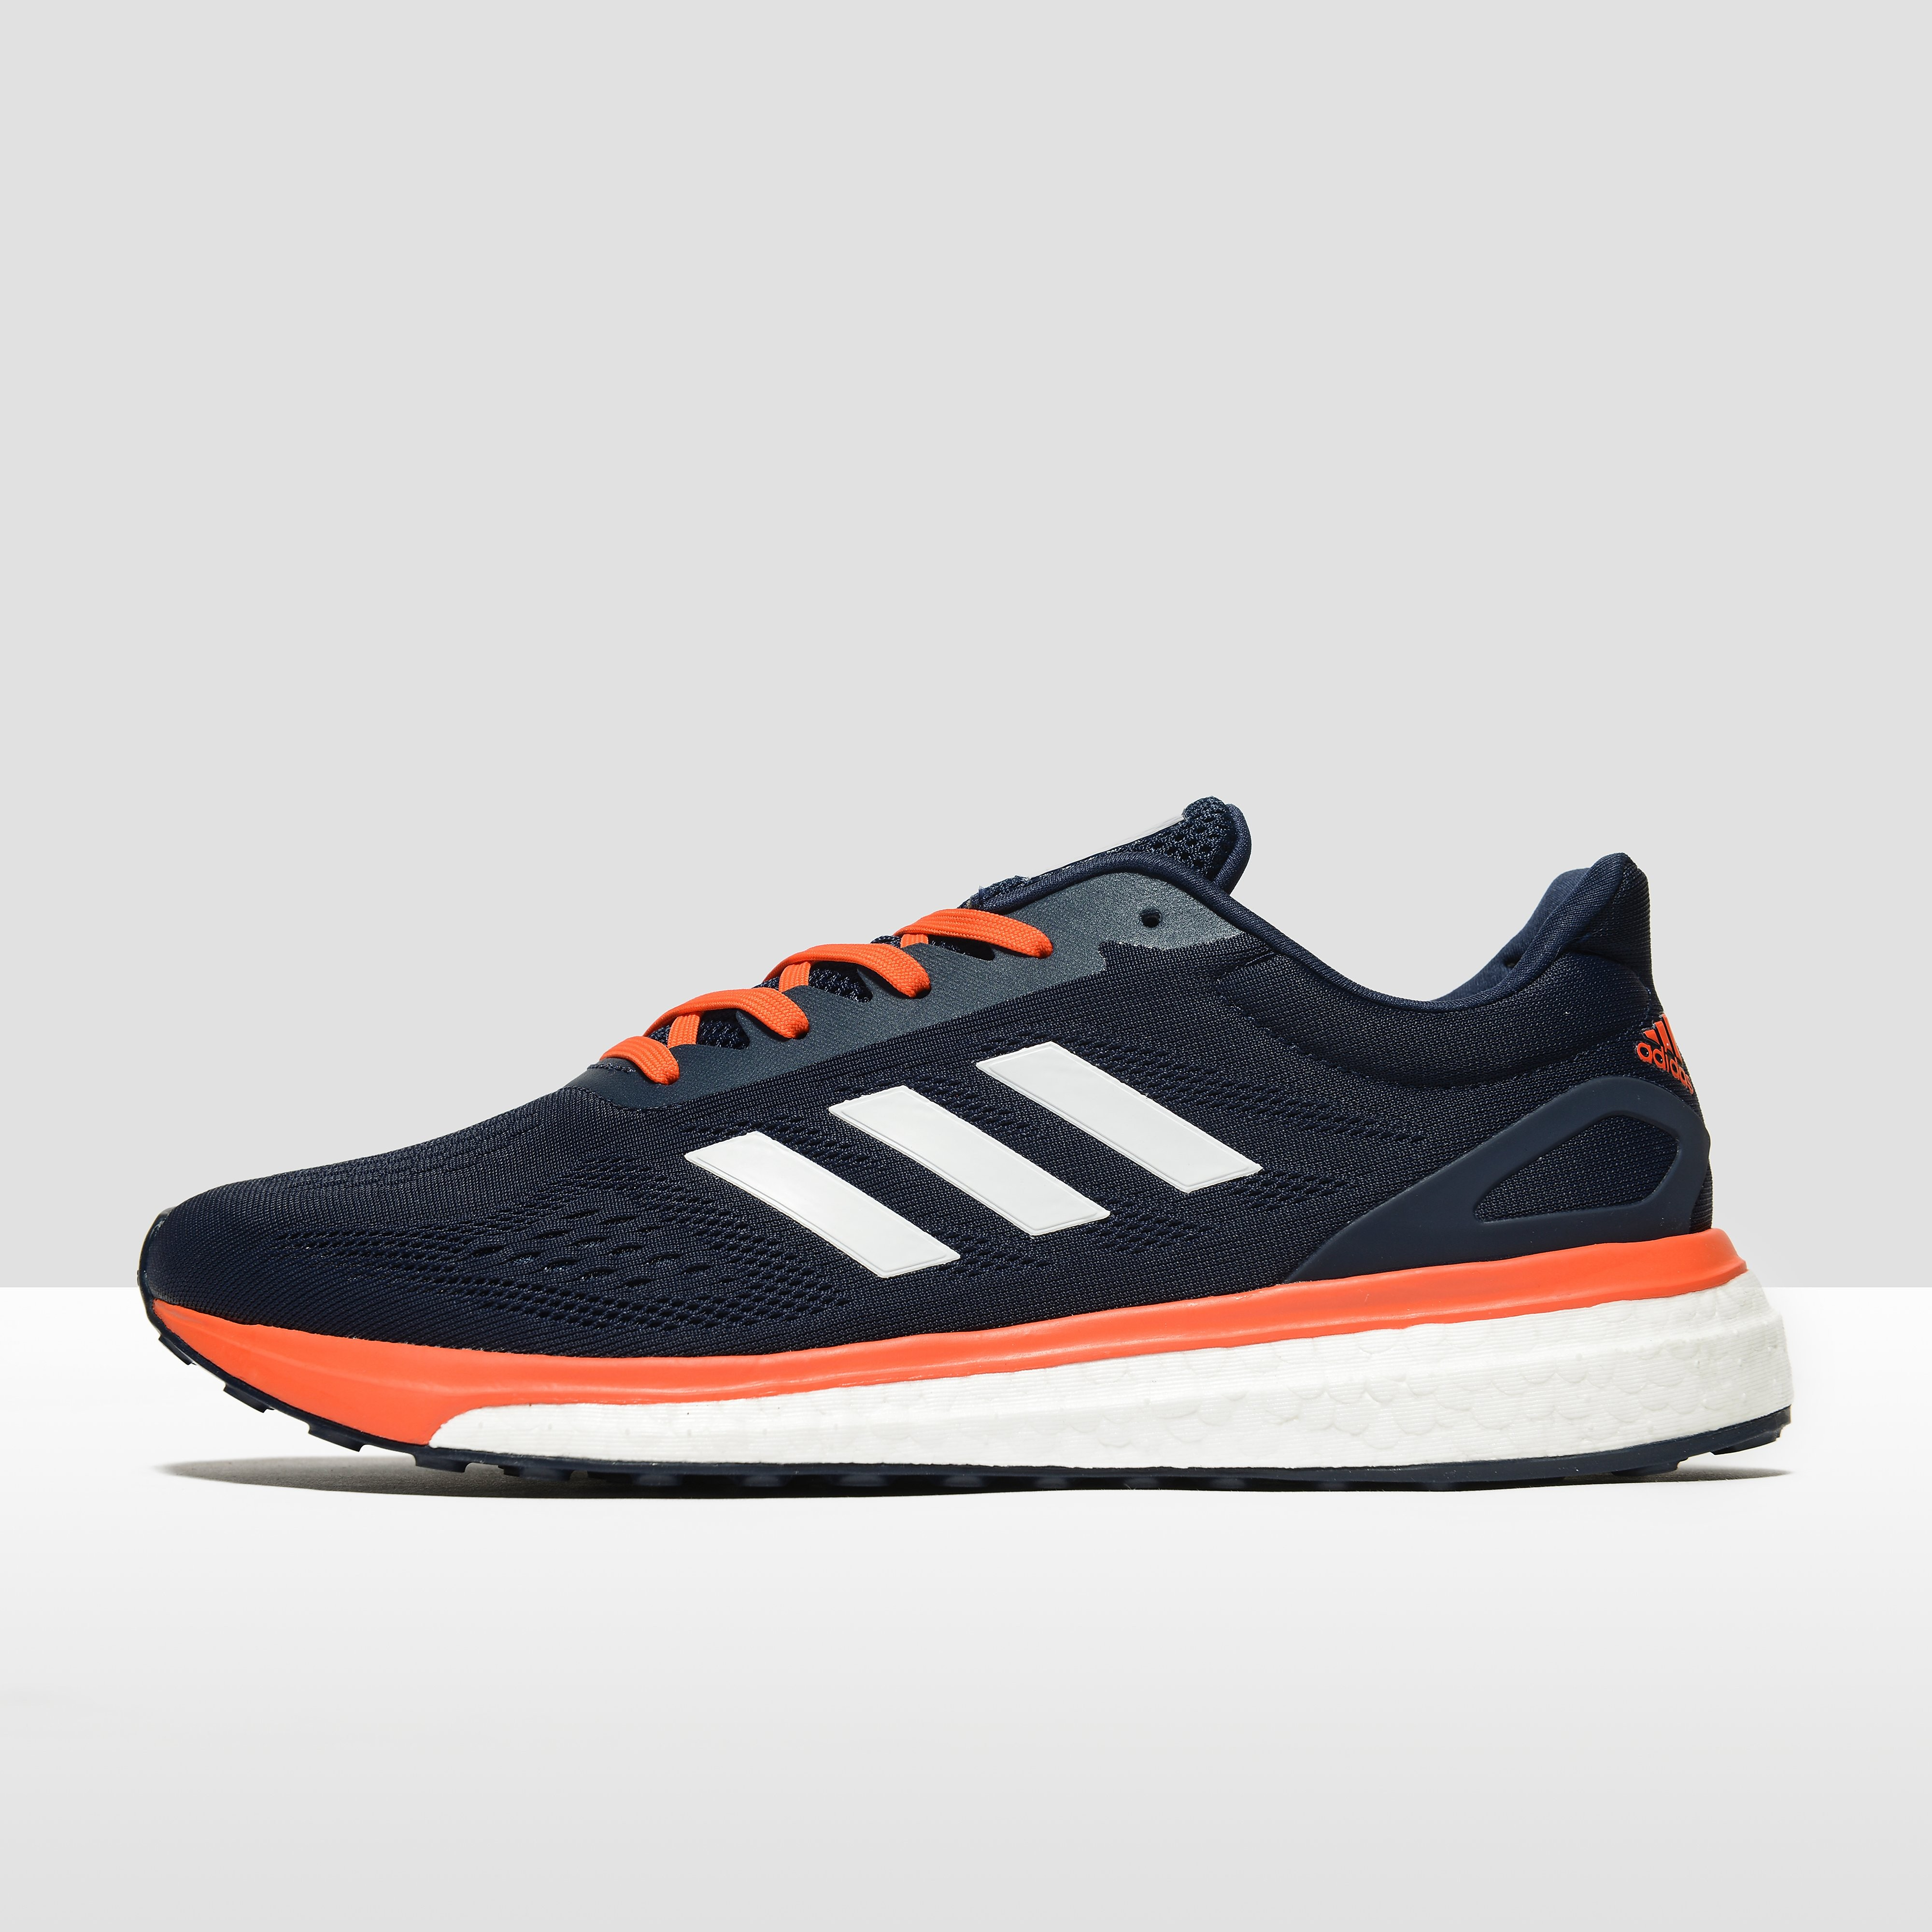 adidas Response LT Men's Running Shoes